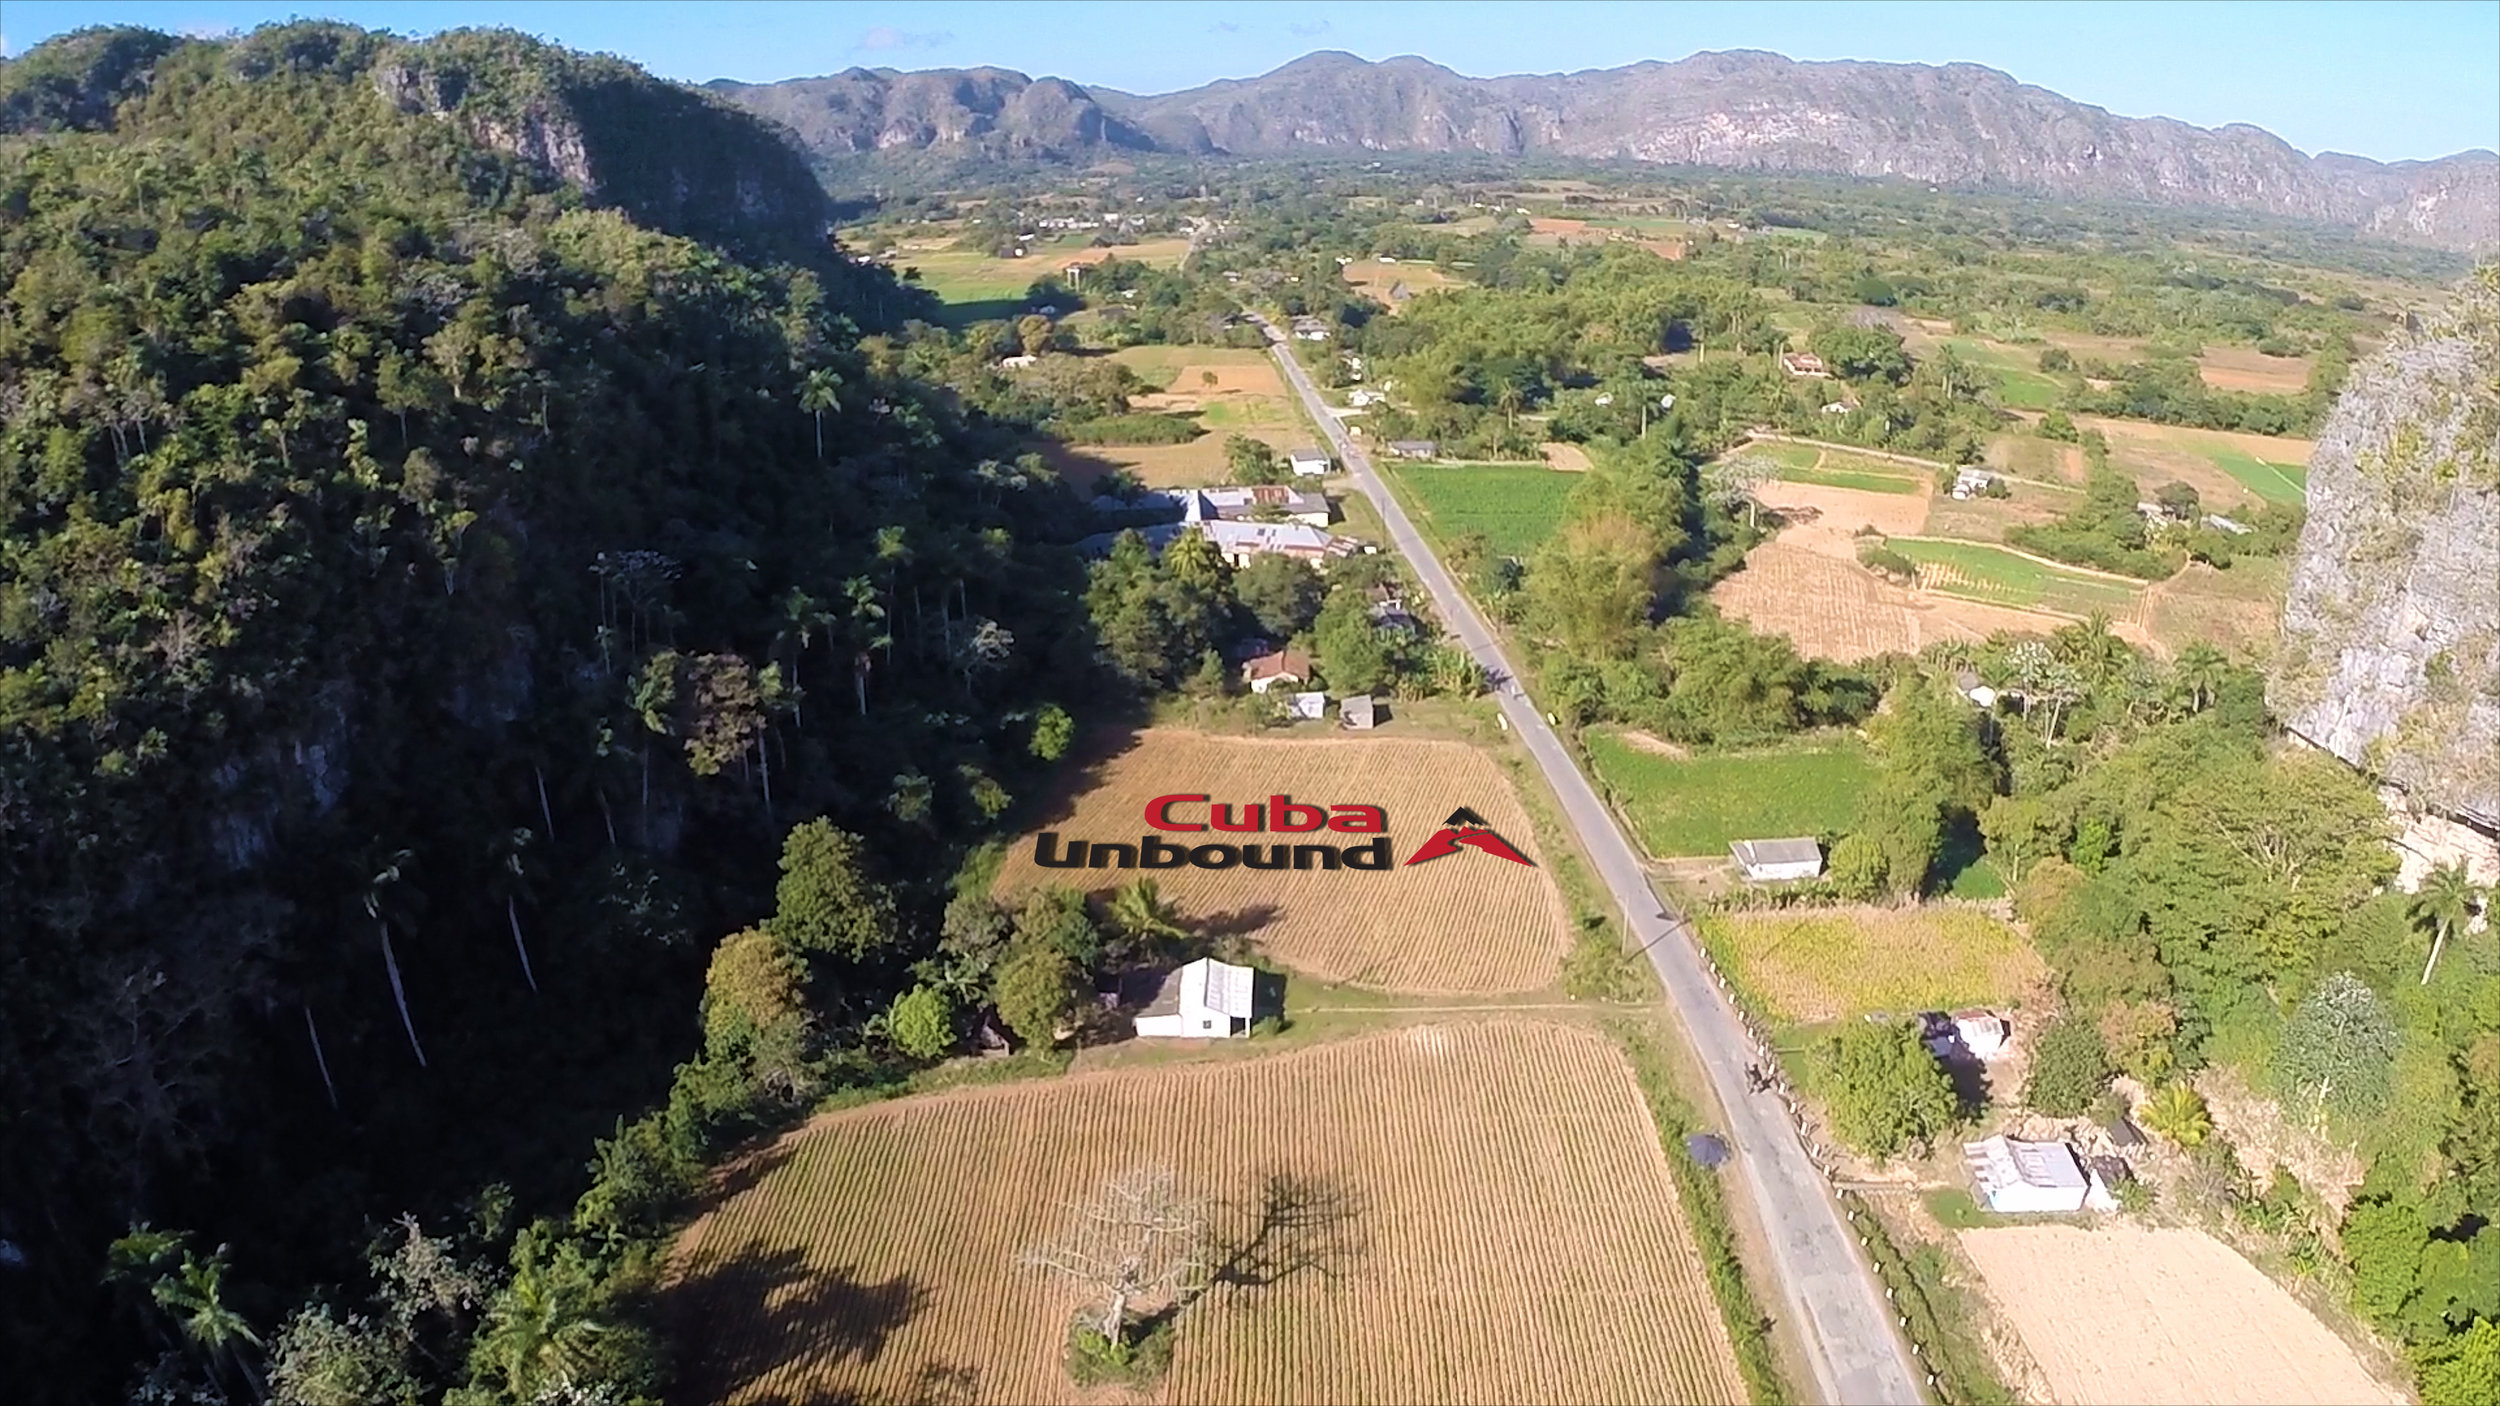 Drone Photography and Video - We are FAA Part 107 Licensed sUAS Pilots